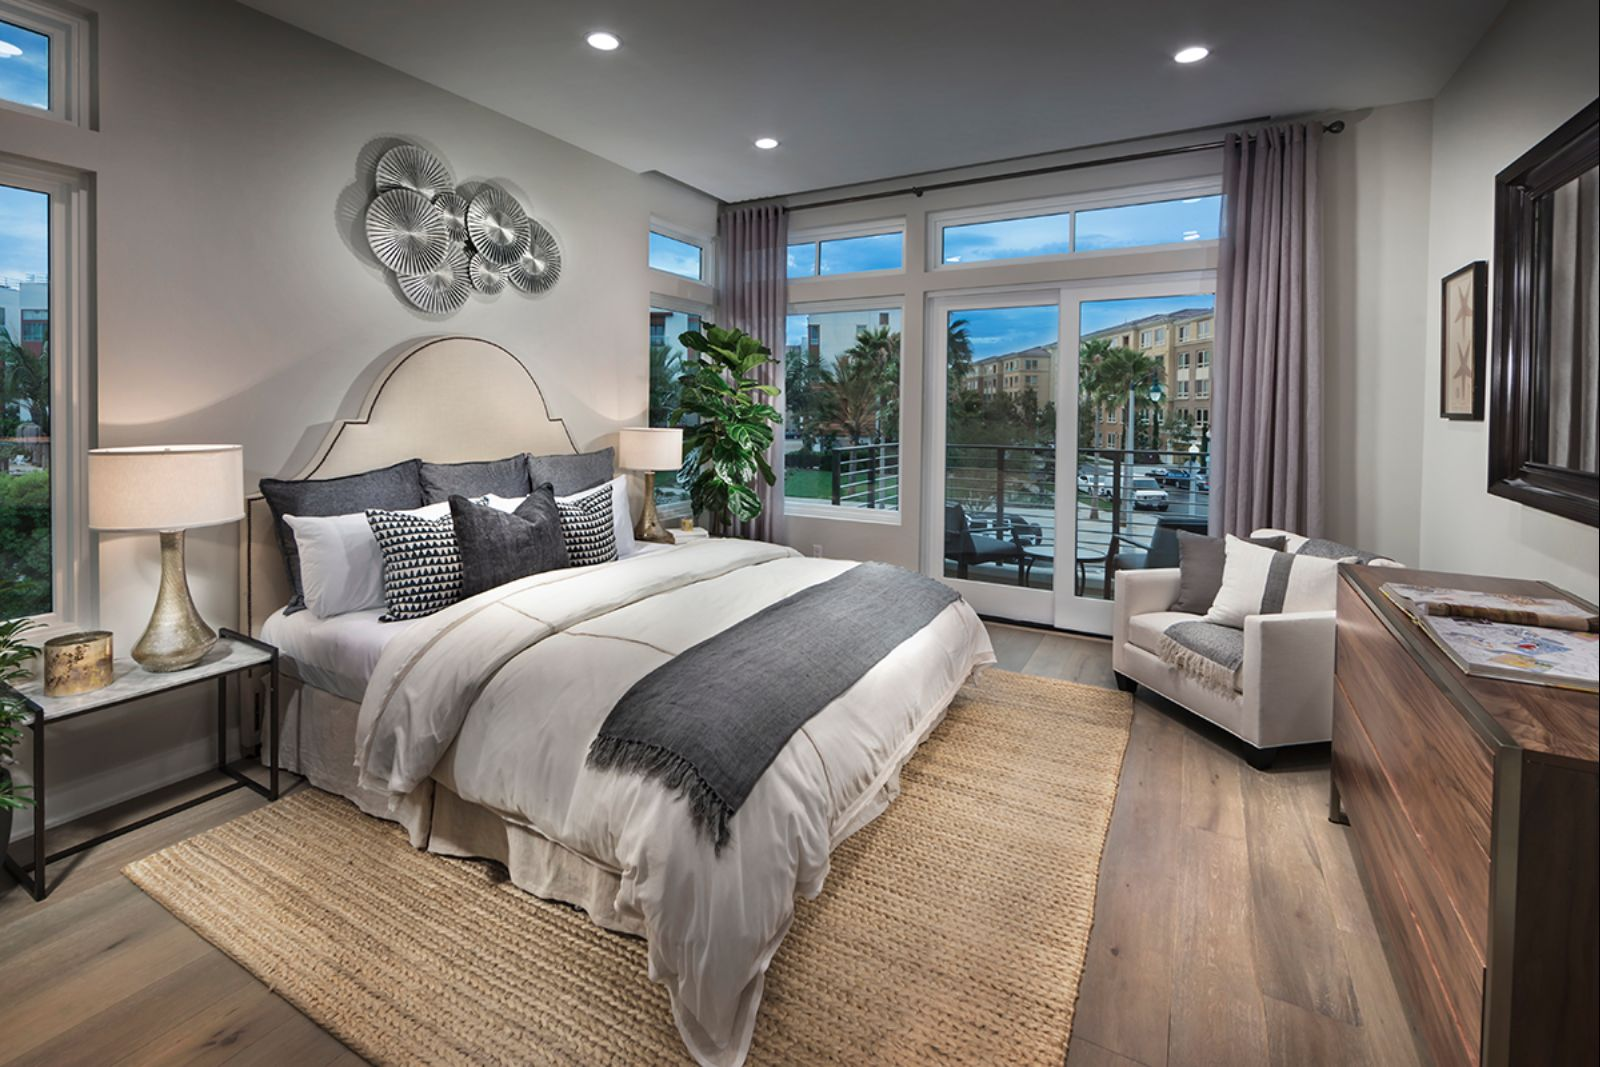 master-bed-residence-2-new-home-the-collection-at-playa-vista-1600x1067.jpg